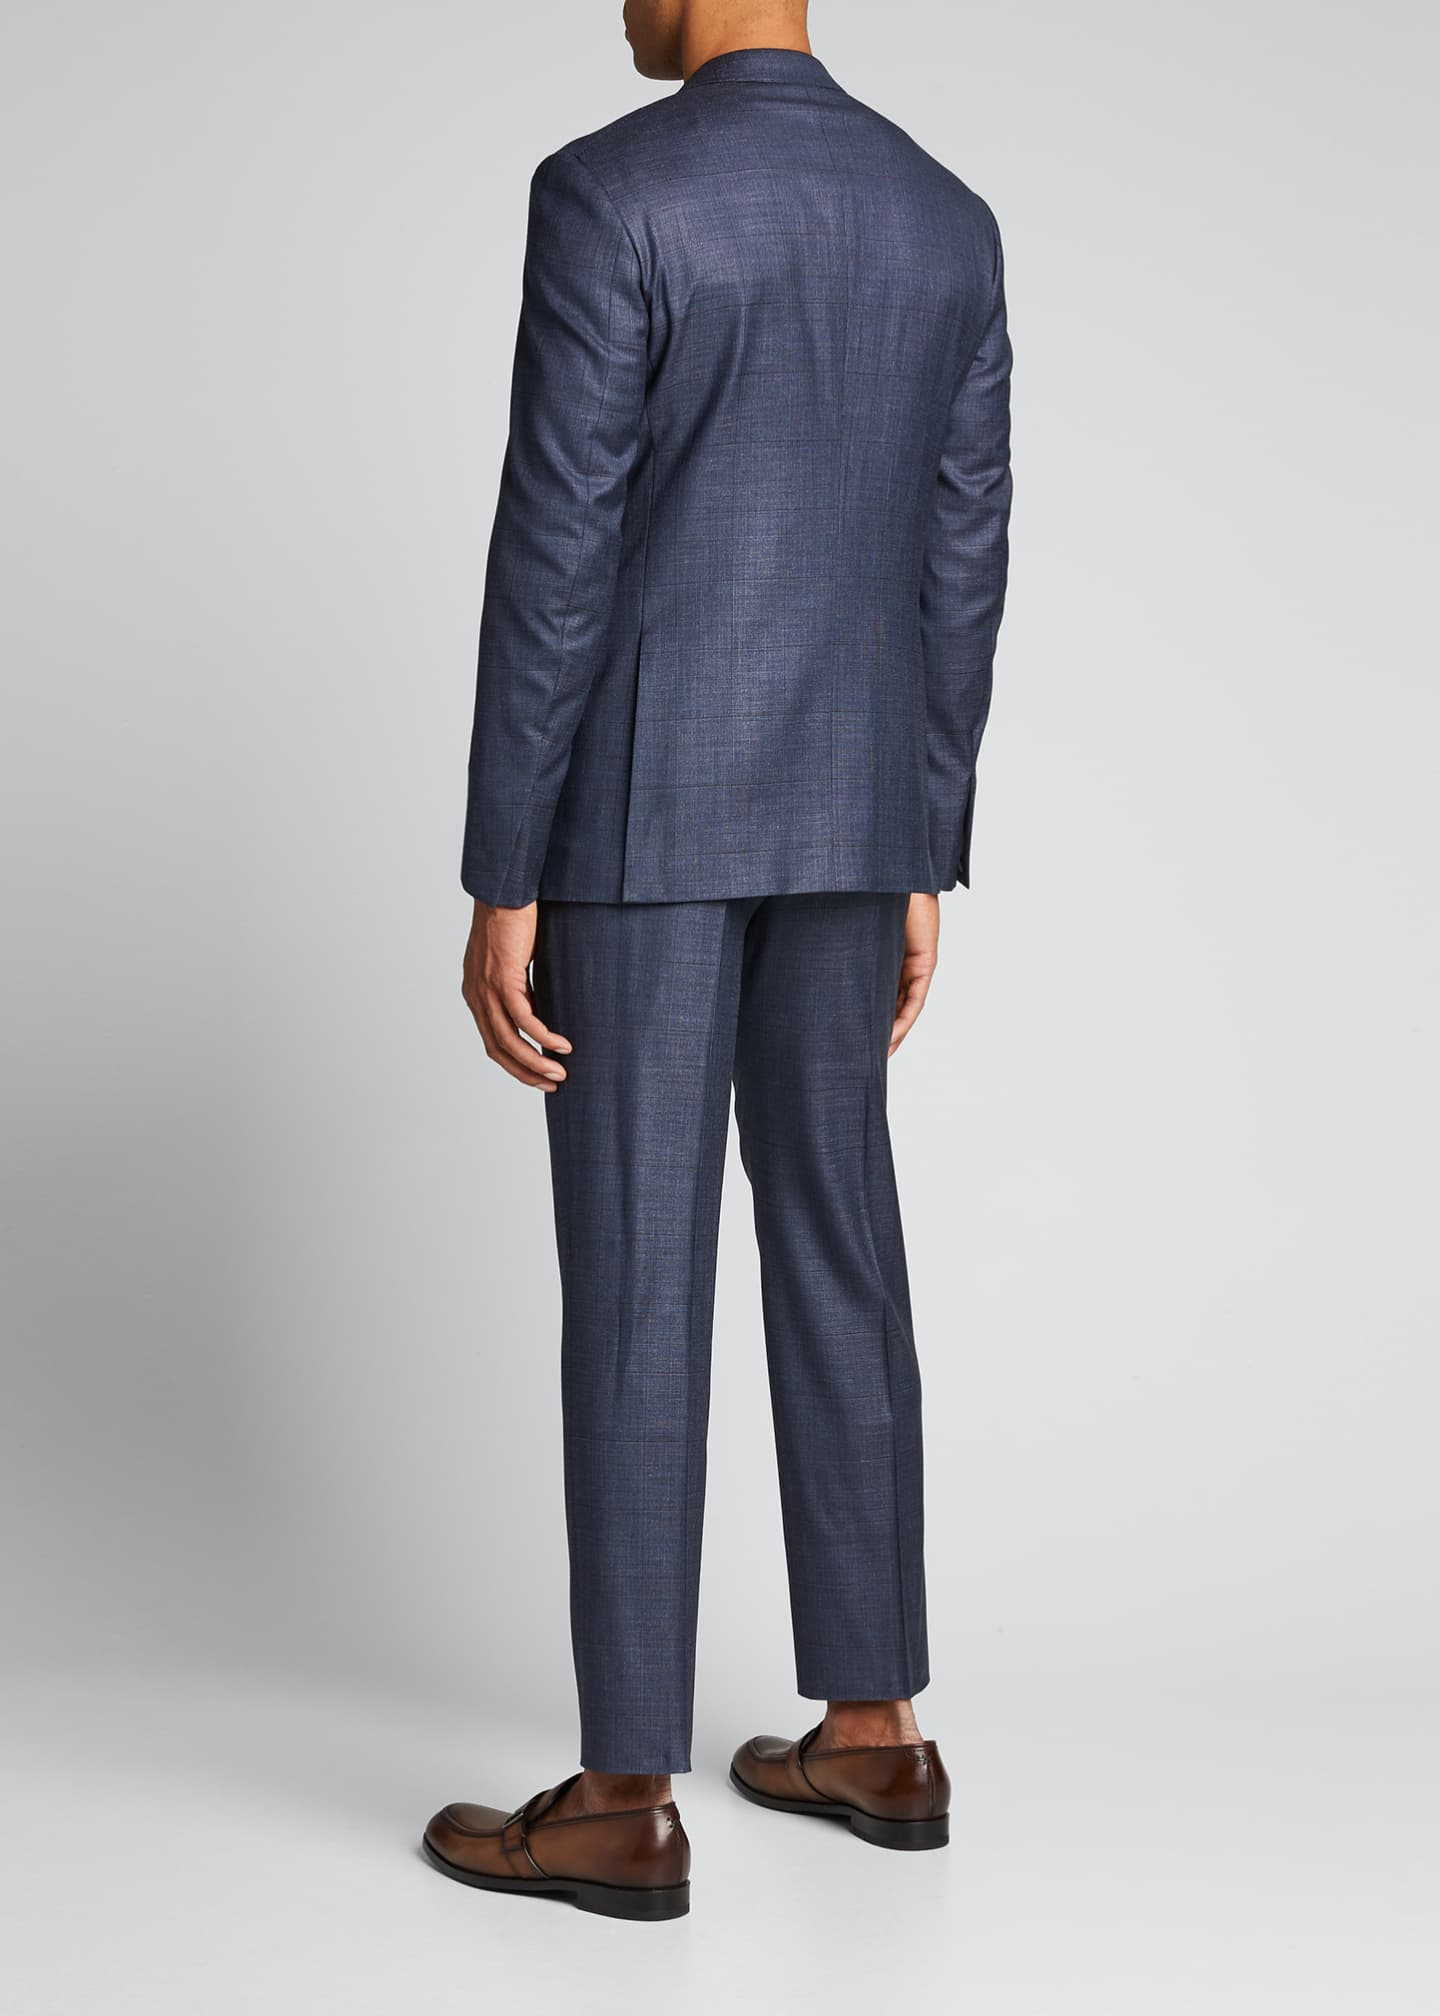 Image 2 of 5: Men's Tic Windowpane Regular-Fit Two-Piece Suit